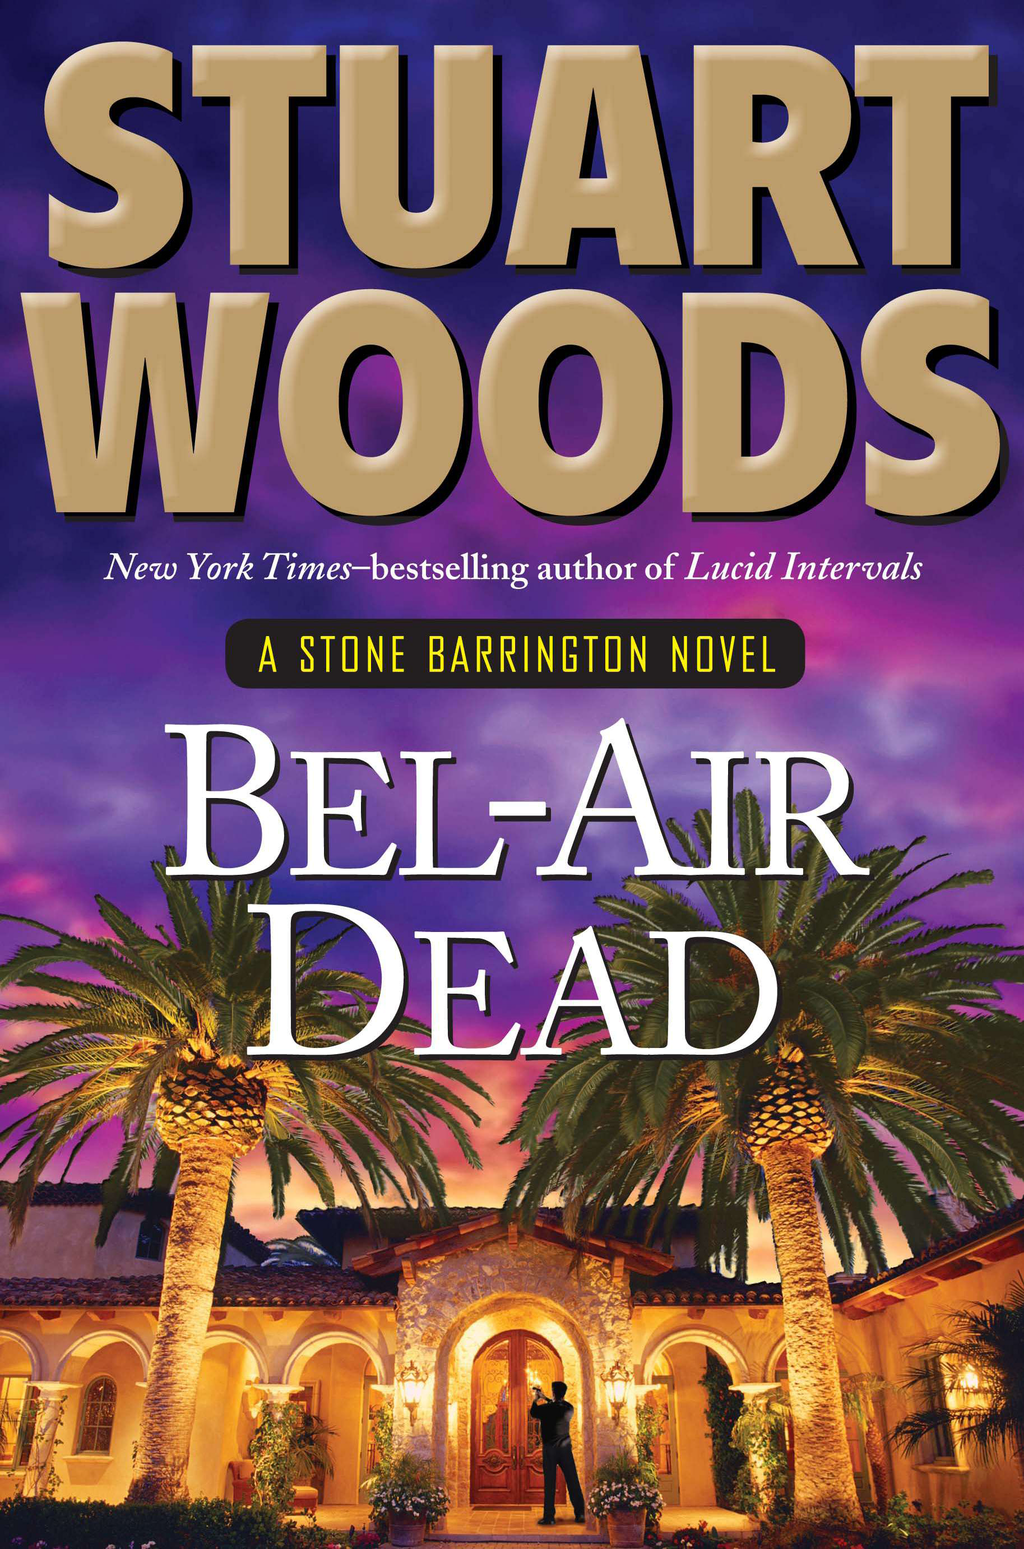 Bel-Air Dead: A Stone Barrington Novel By: Stuart Woods